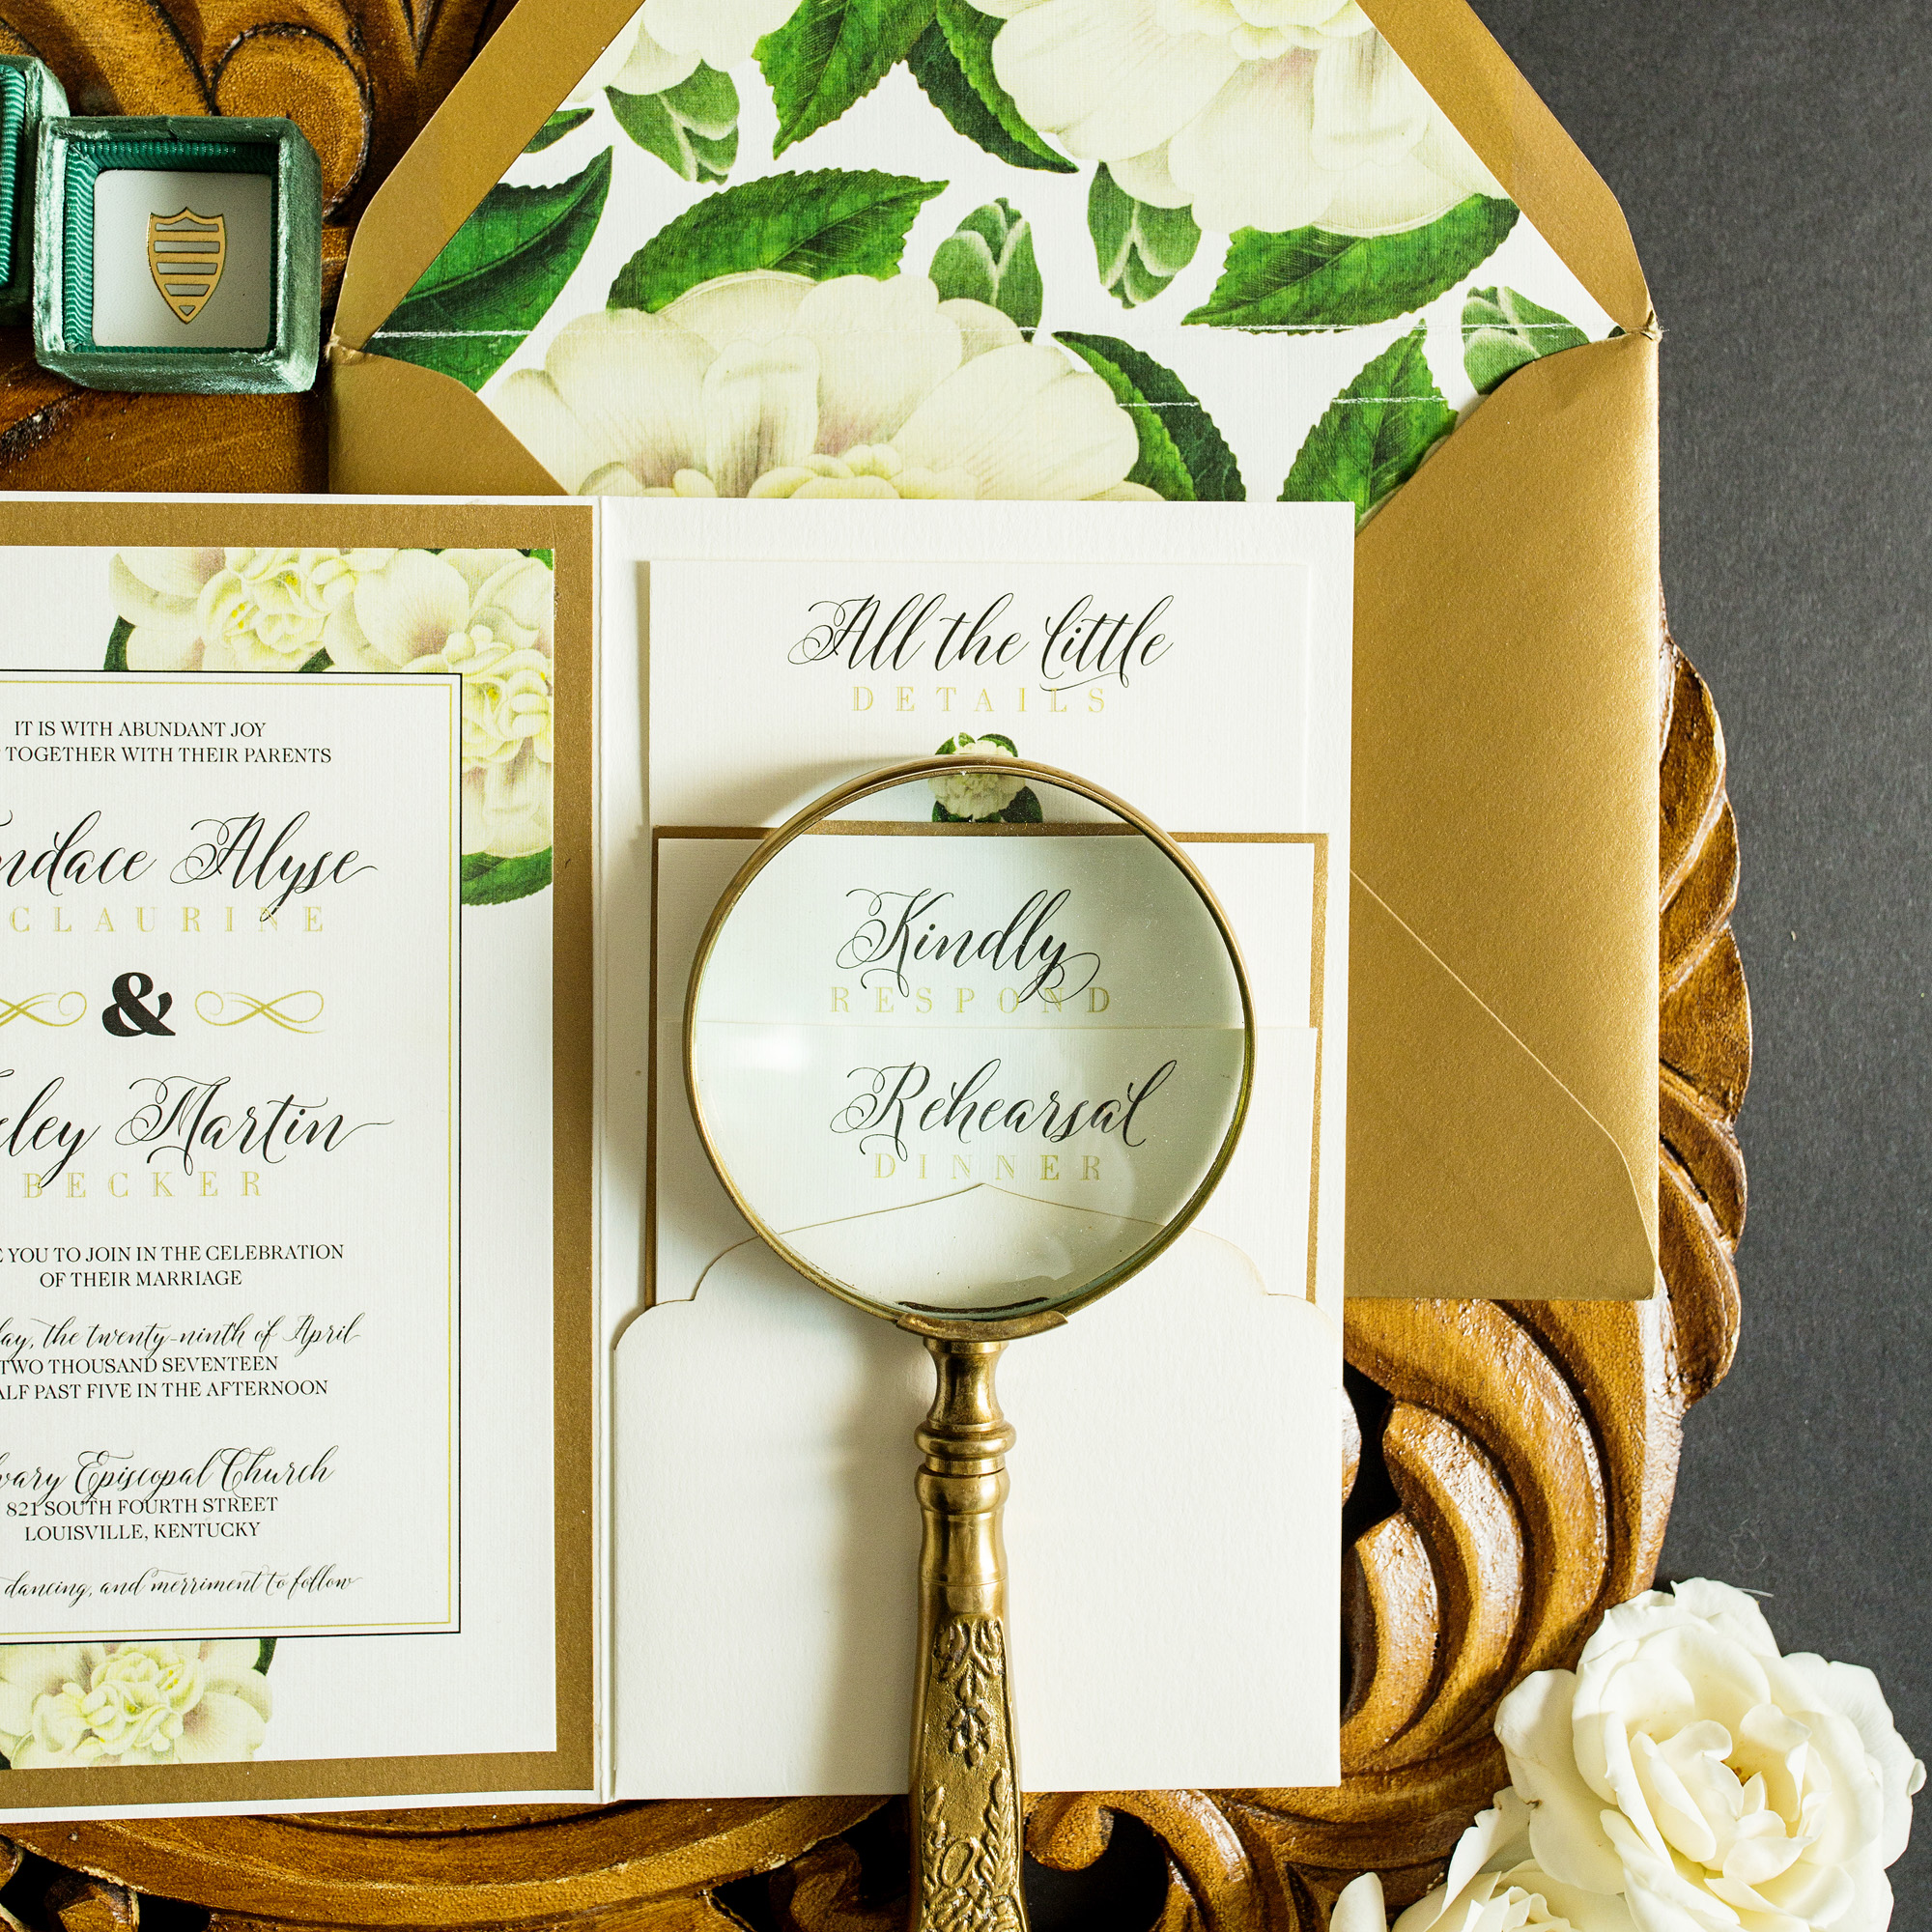 Seriously_Sabrina_Photography_Commercial_Simply_Done_Invites_2019_March_099